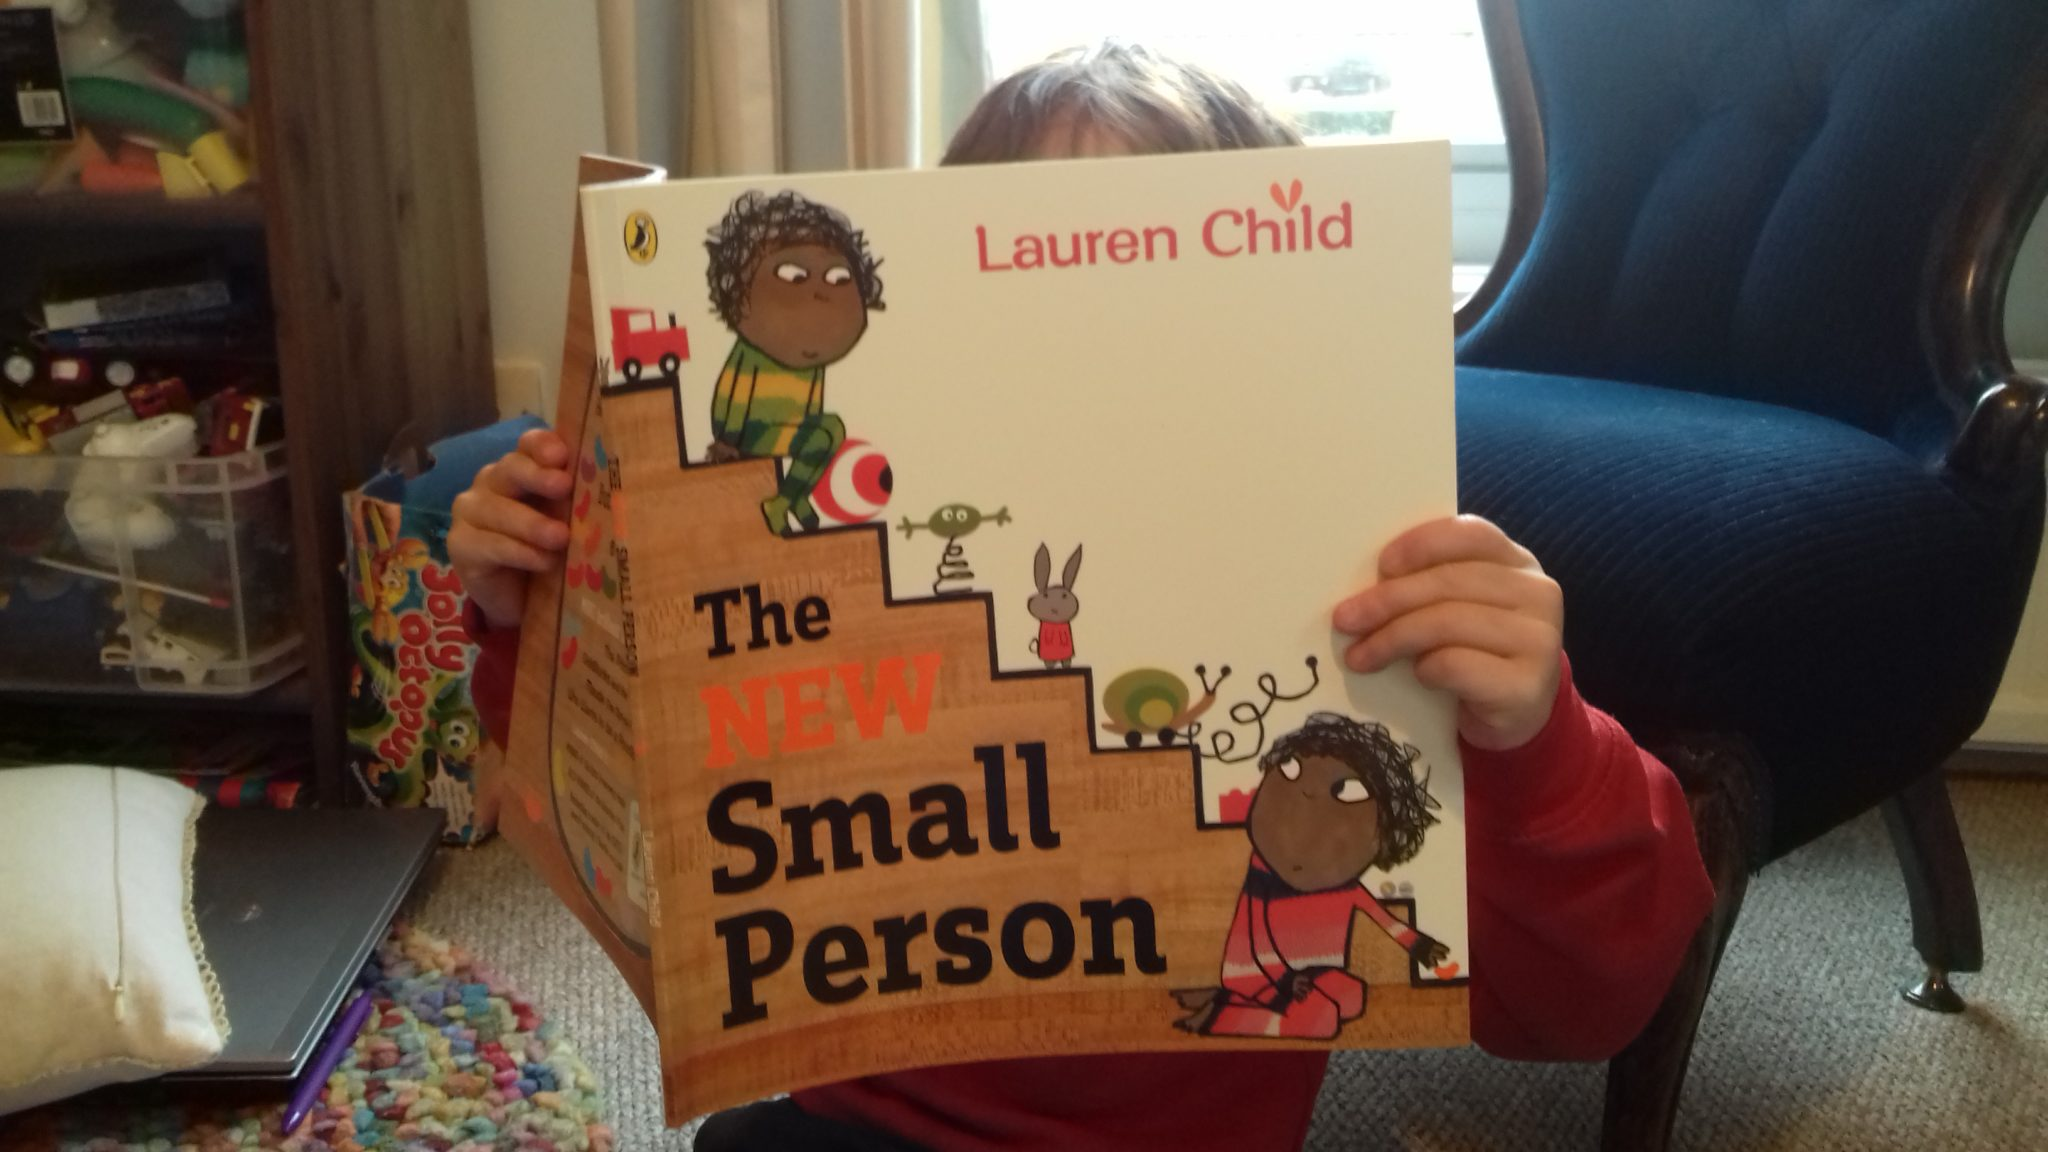 The new small person (Lauren Child) - Looking for multicultural books for your children? This list features 25+ of the best diversity books about race and culture for the kids in your family or your classroom.